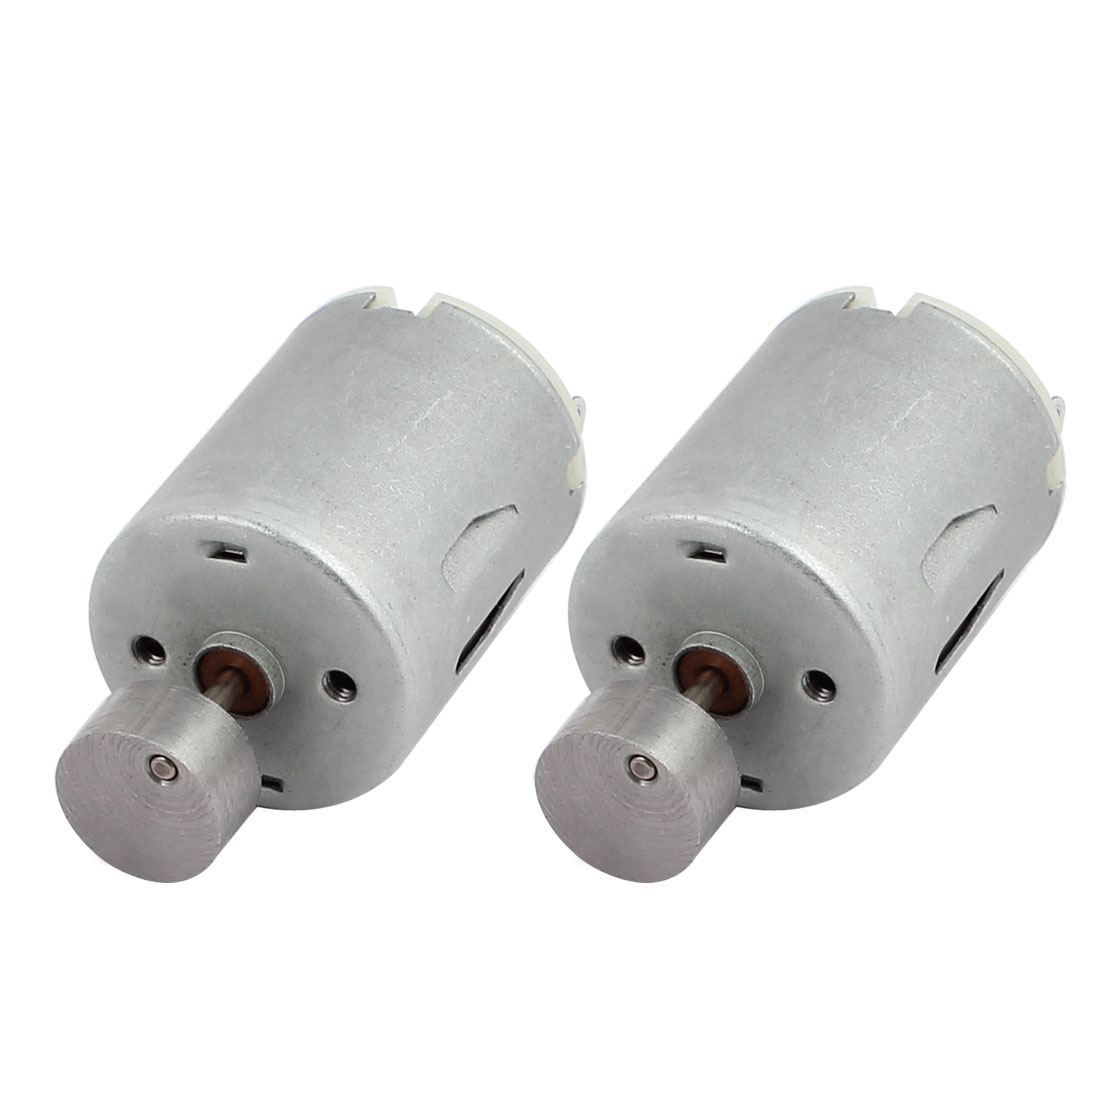 2Pcs DC6V 4000RPM Rotary Speed Electric Vibration Mini 280 Motor for DIY Model Toy